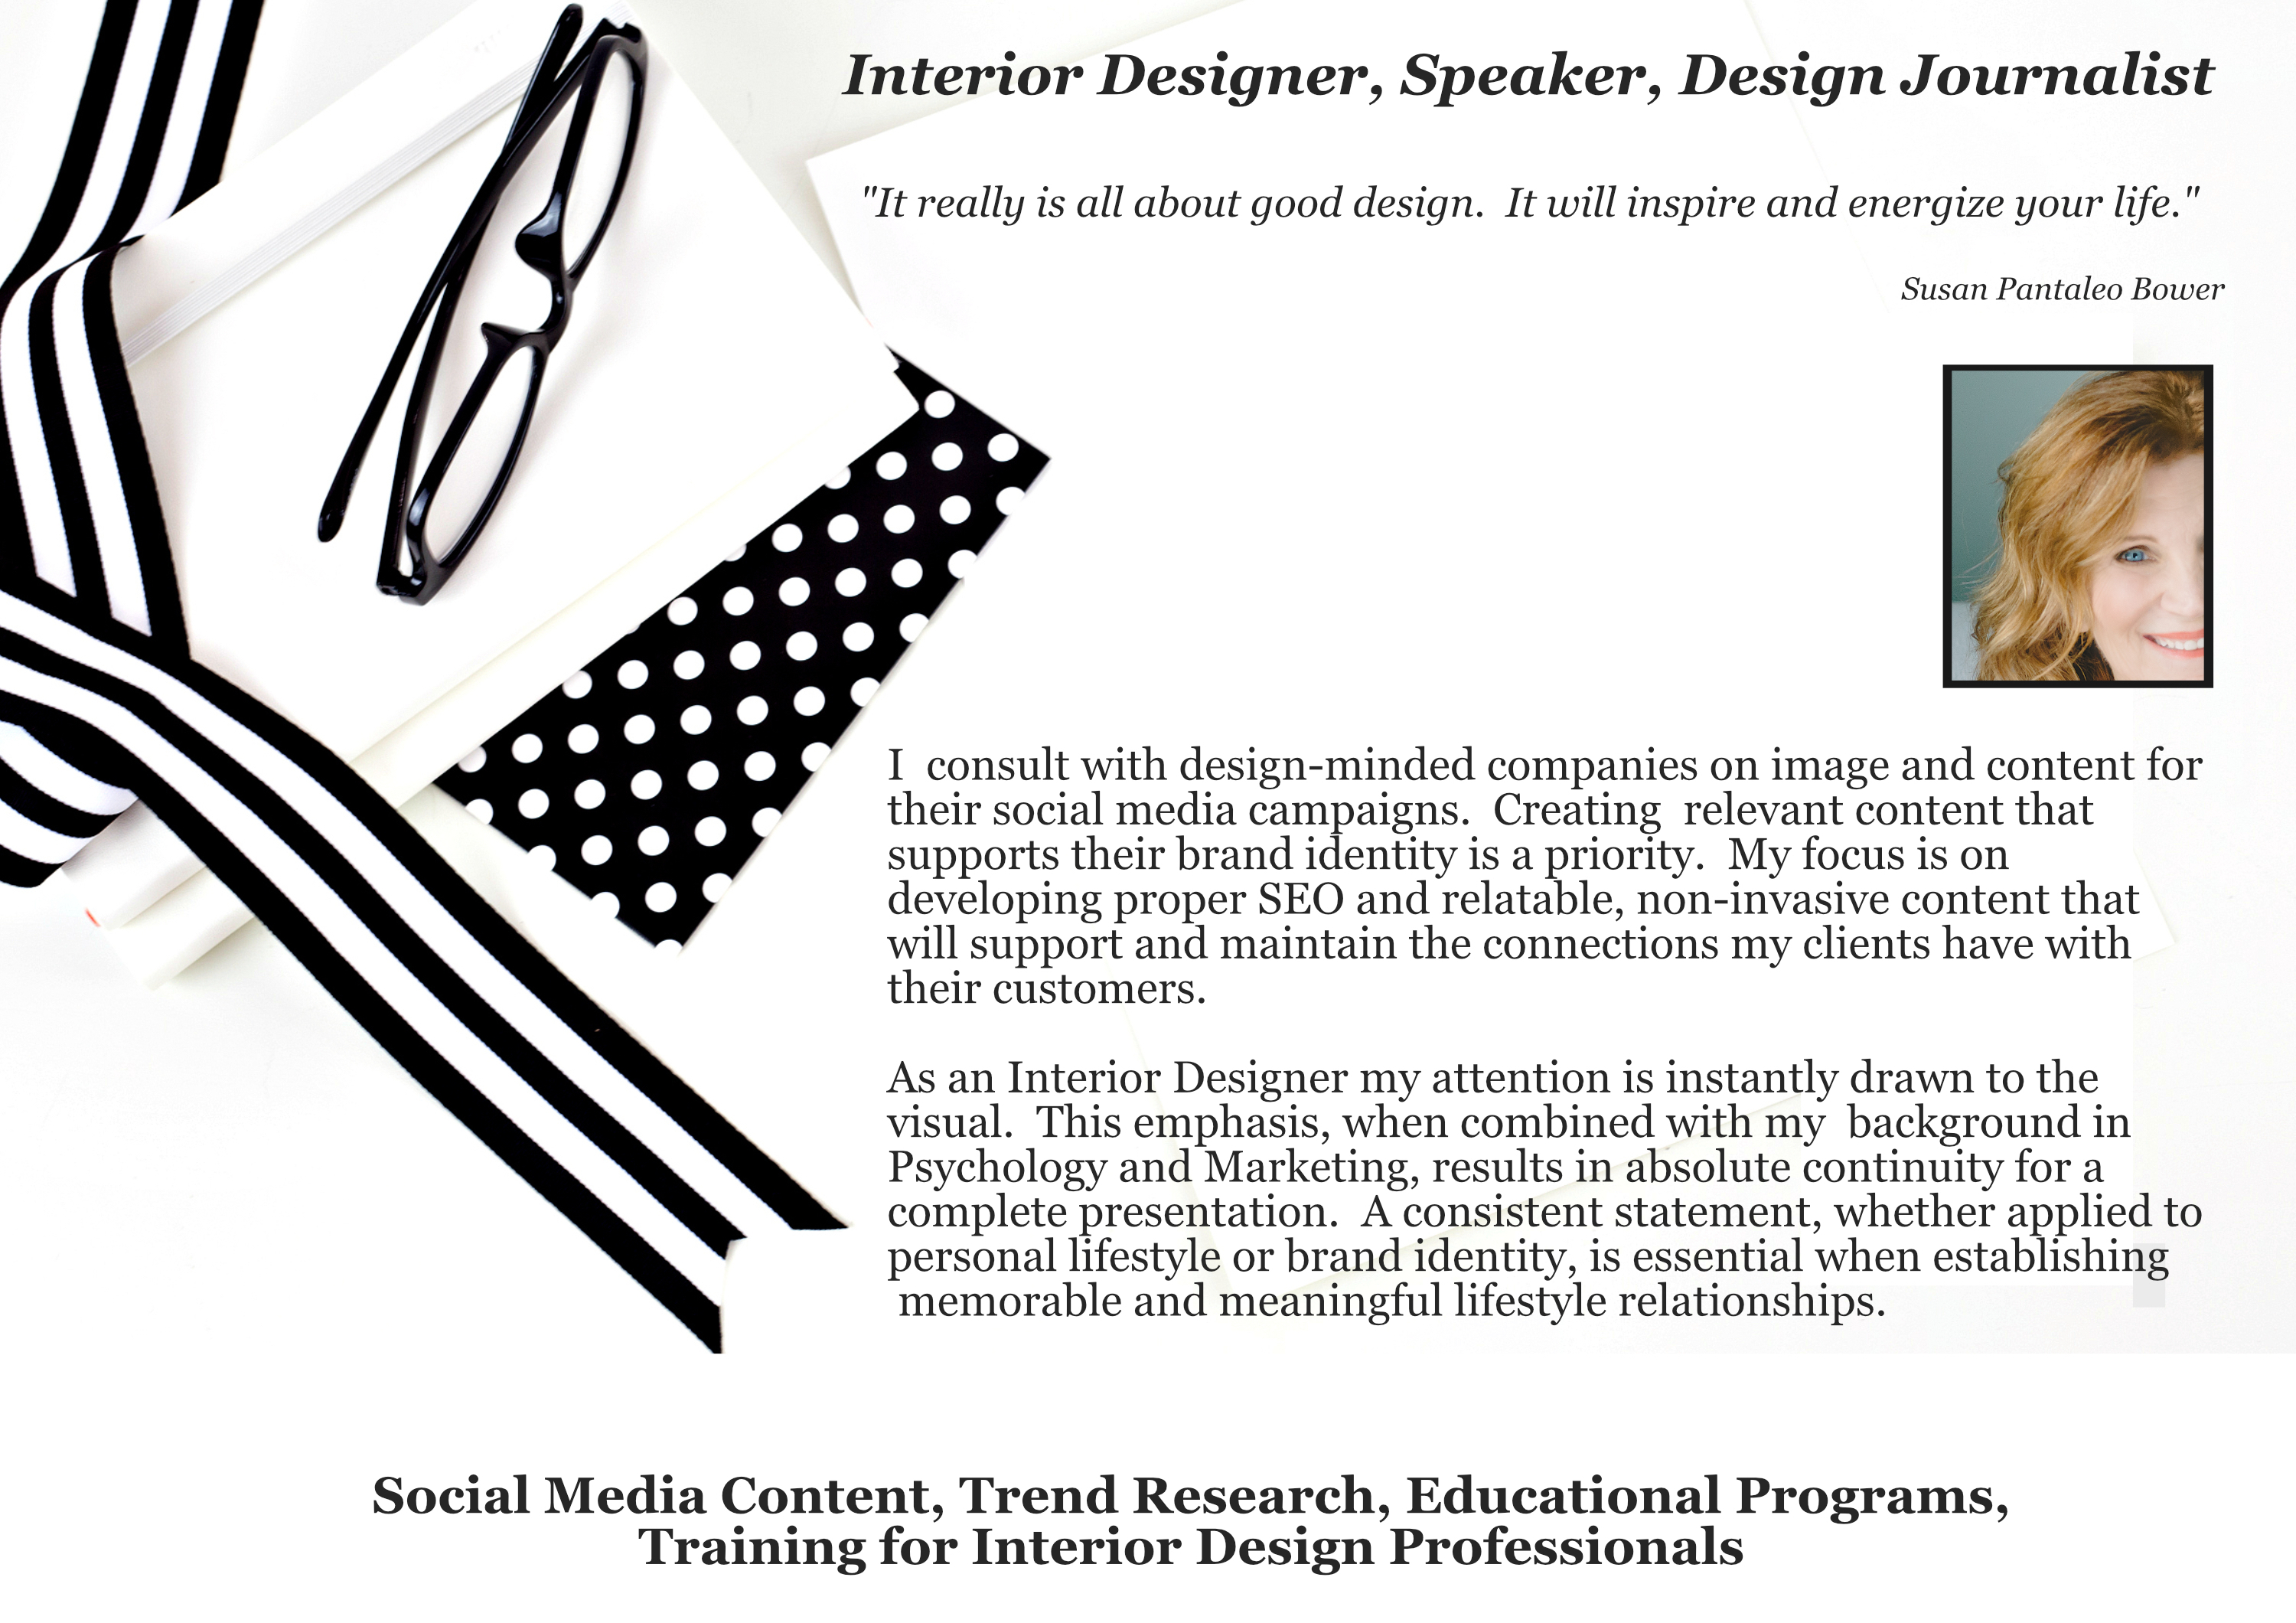 About Concepts In Design Inc